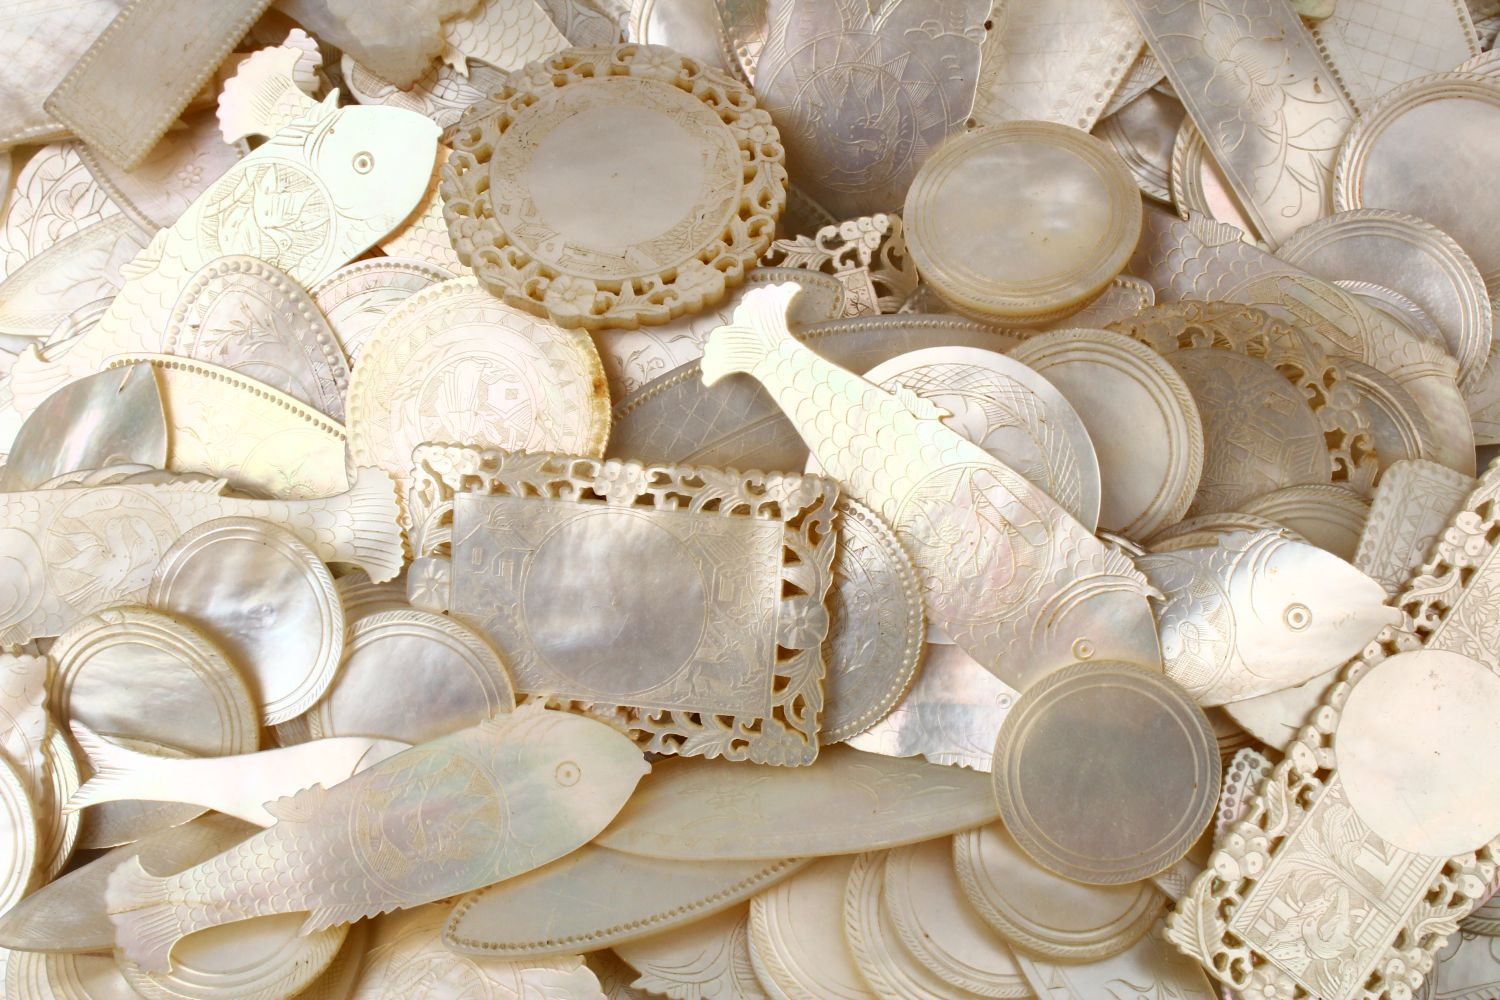 A QUANTITY OF 19TH CENTURY CHINESE CARVED MOTHER OF PEARL GAME COUNTERS, various styles an sizes. - Image 5 of 9